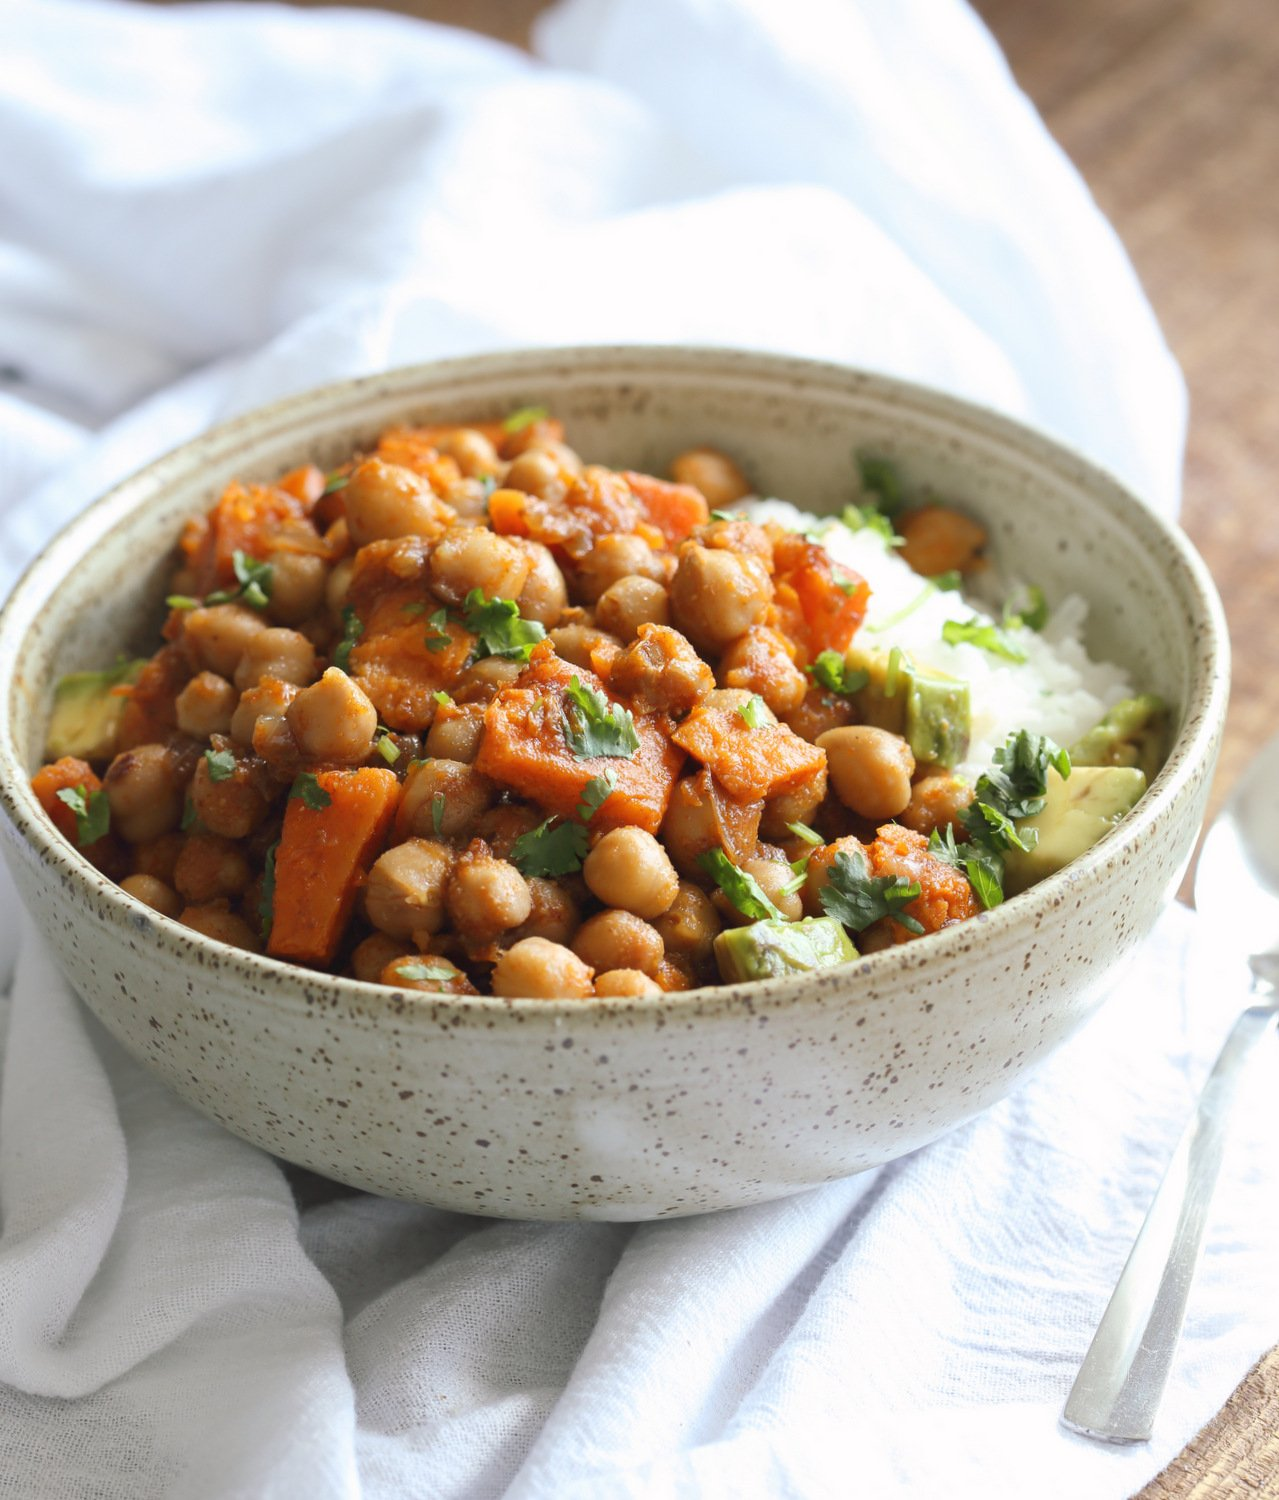 Our Harrisa Chickpea Stew in Stoneware Bowl